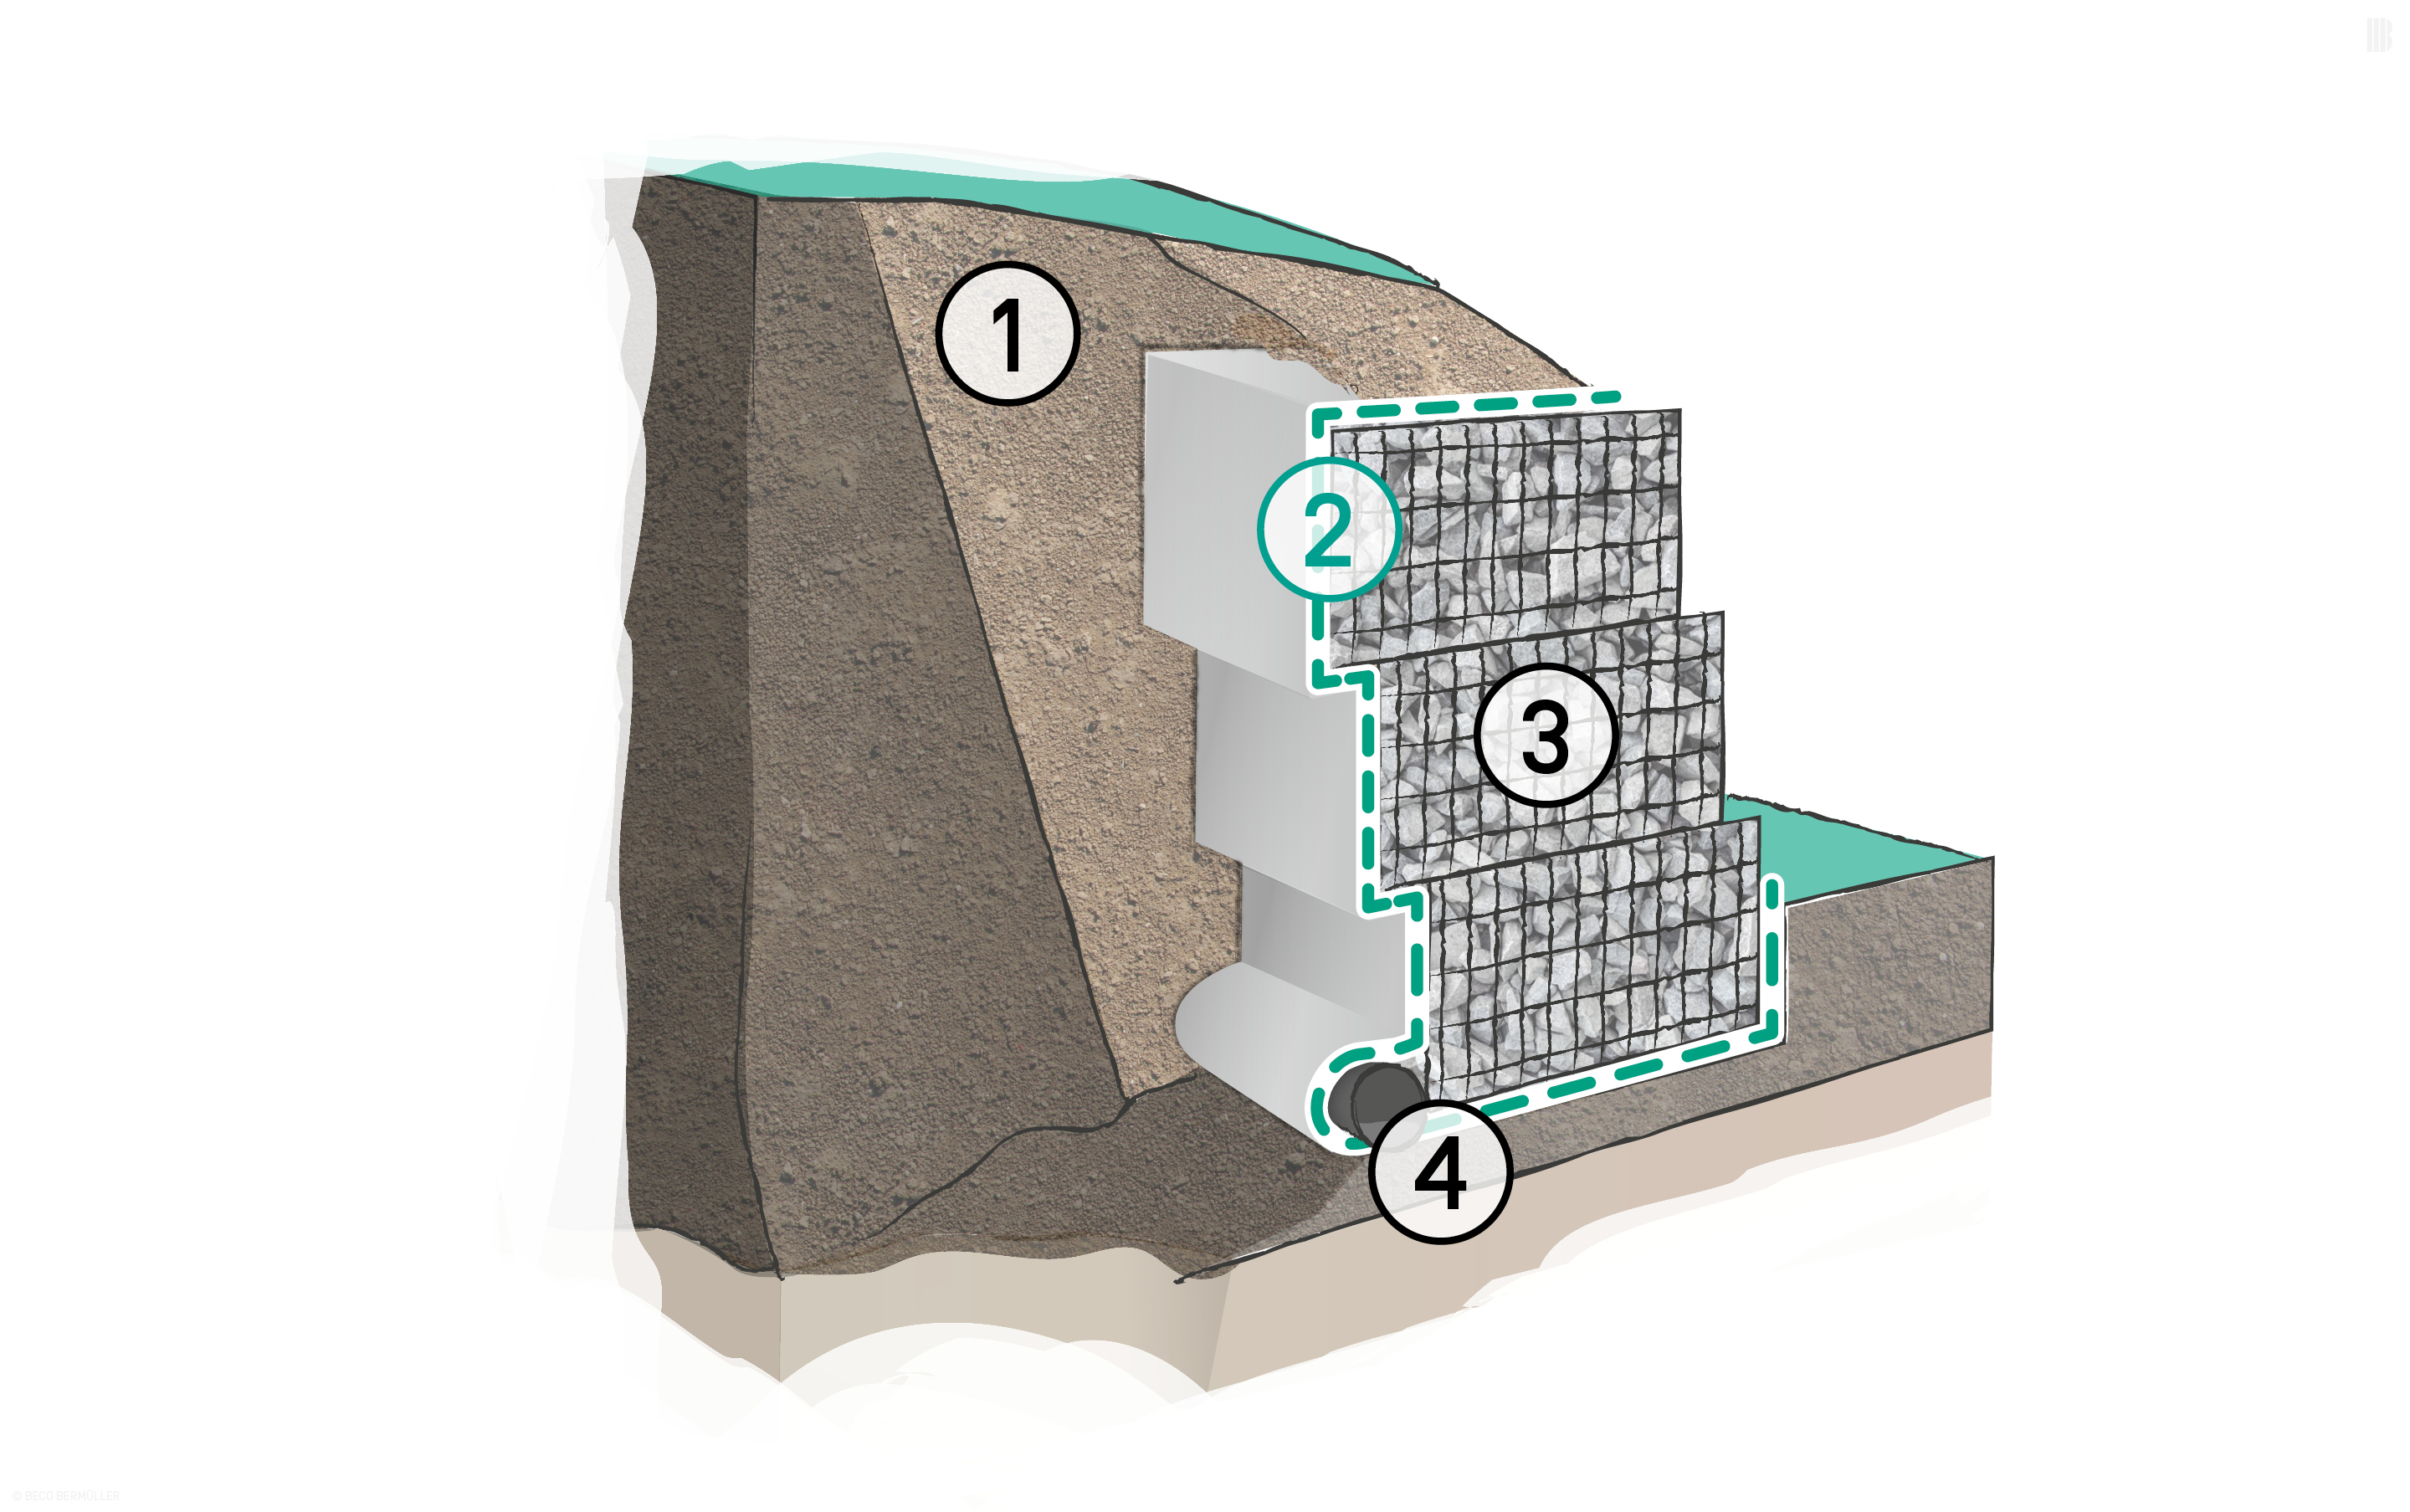 Filter layer behind gabions: 1. Backfill material | 2. BONTEC NW Non-woven Fabric | 3. Gabions | 4. Perforated pipe